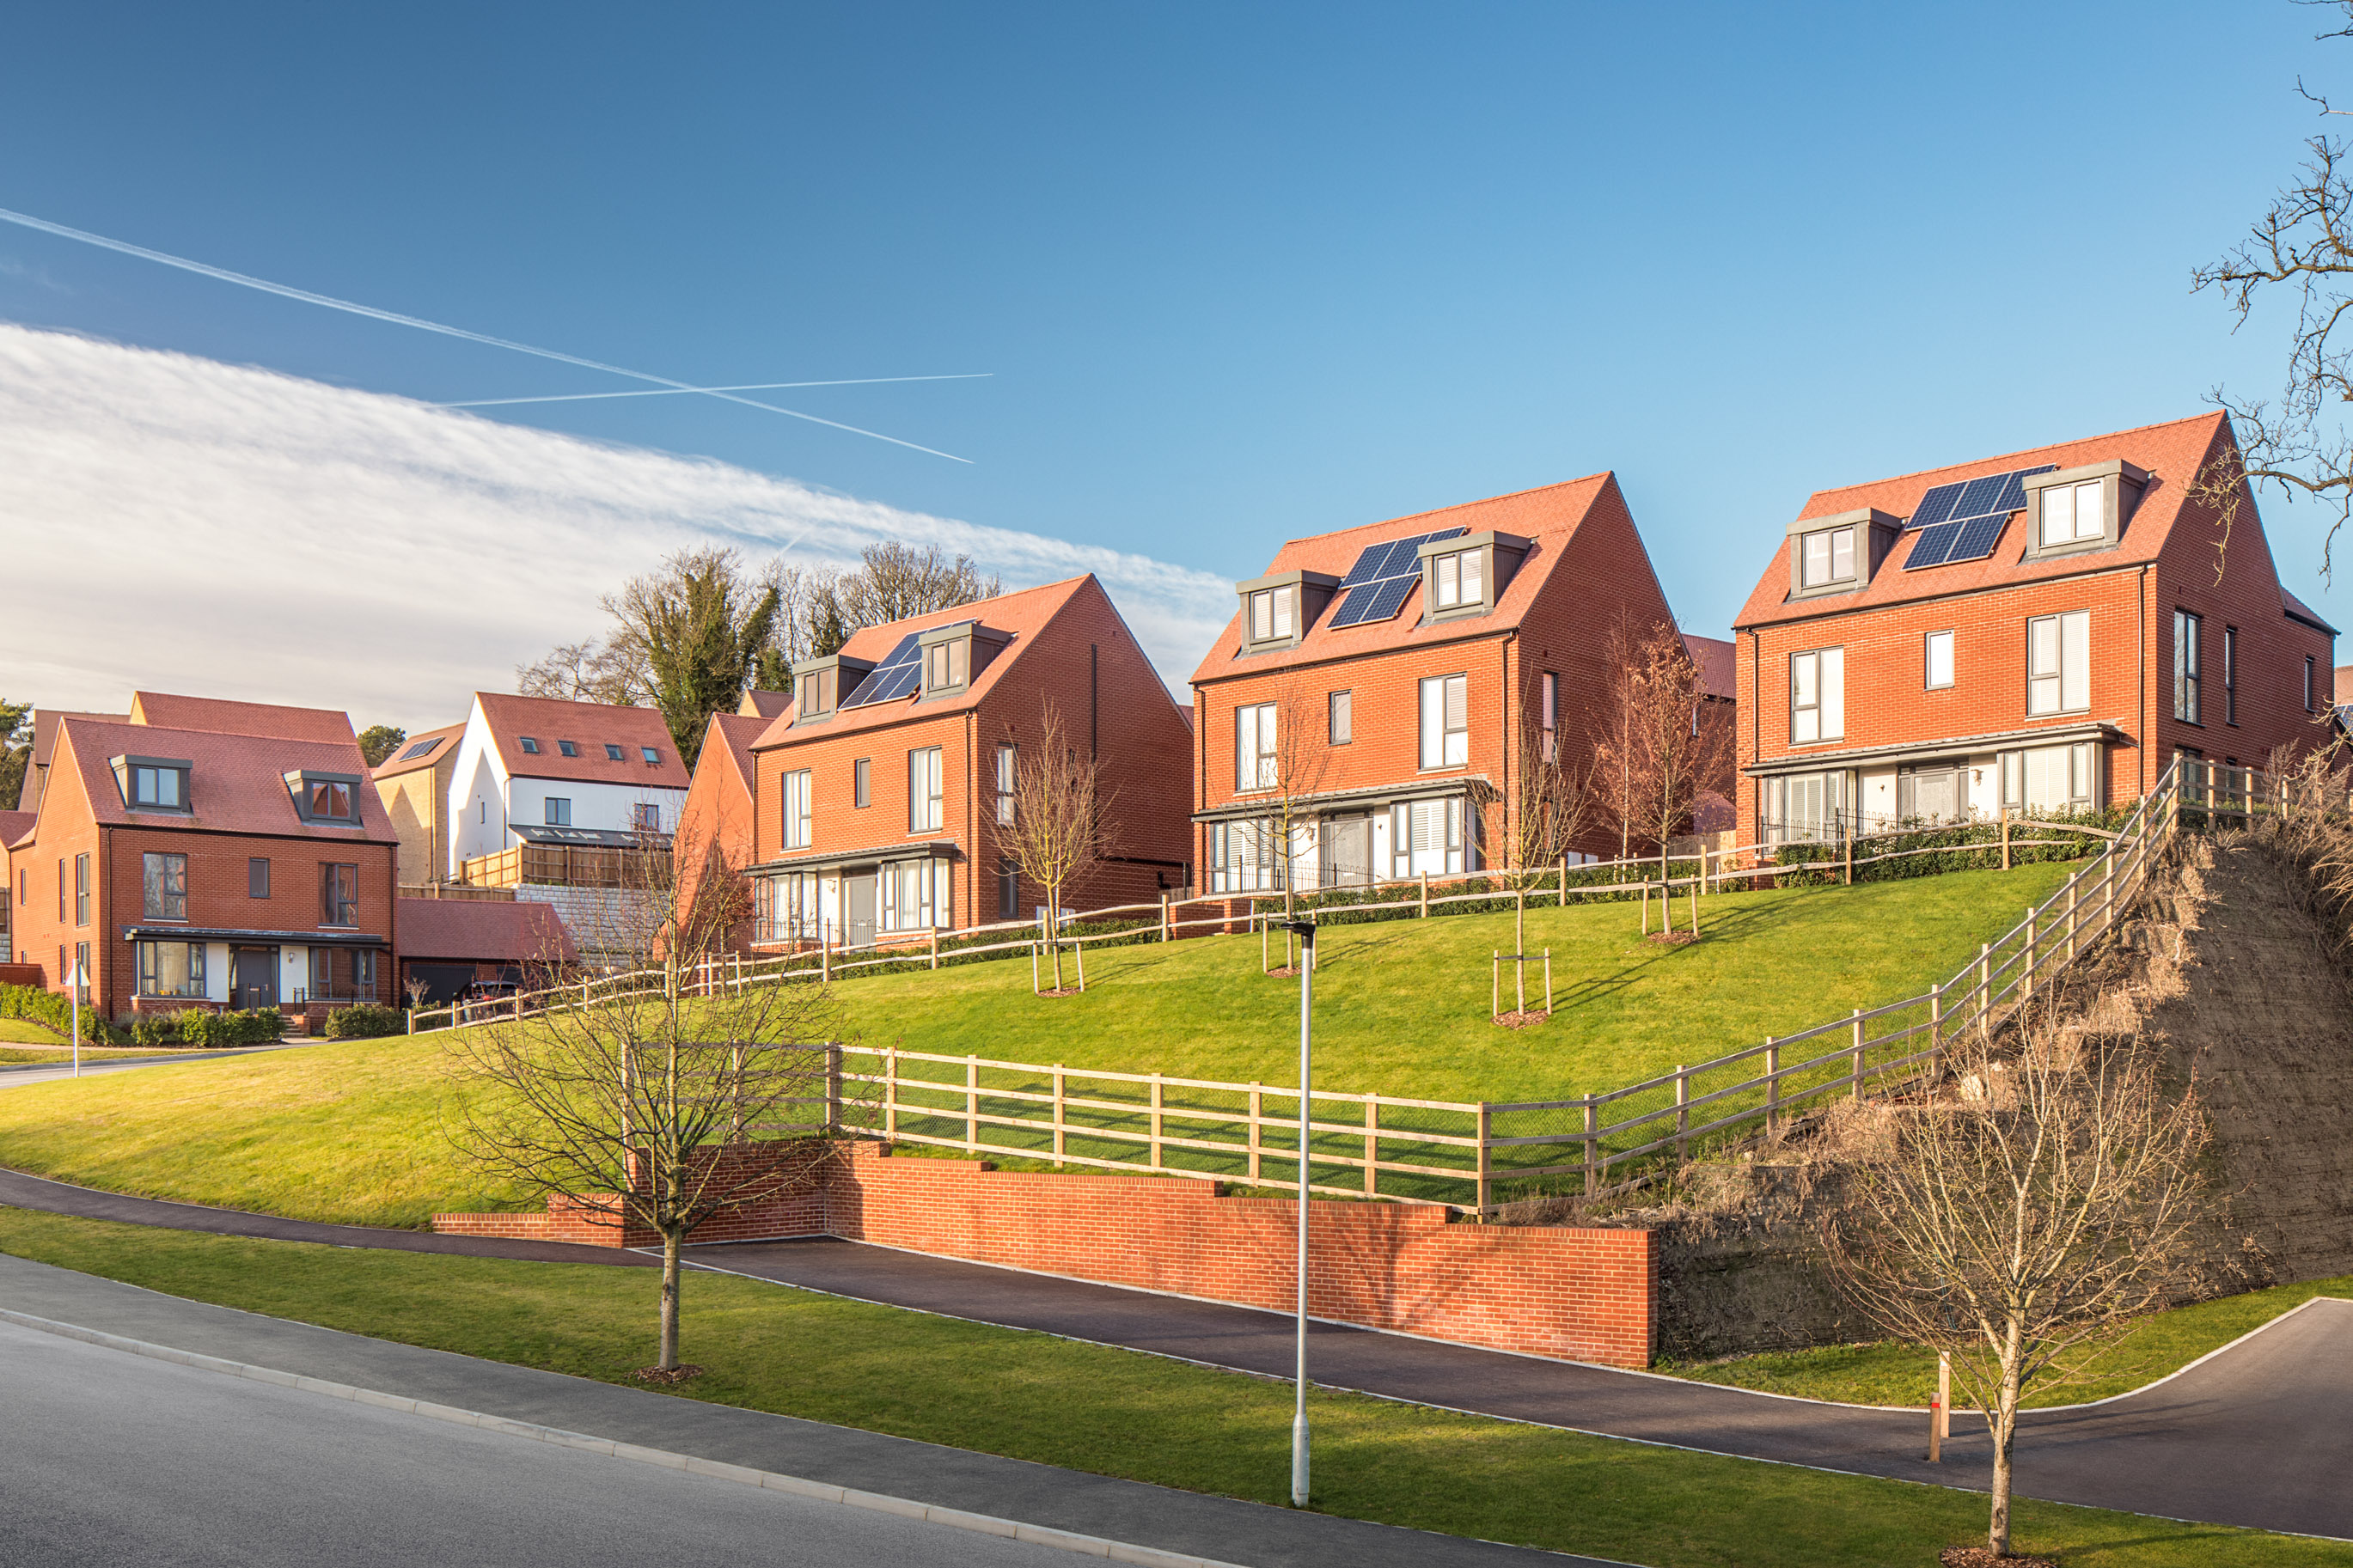 c90fb6780c5 New Homes for sale in Coulsdon